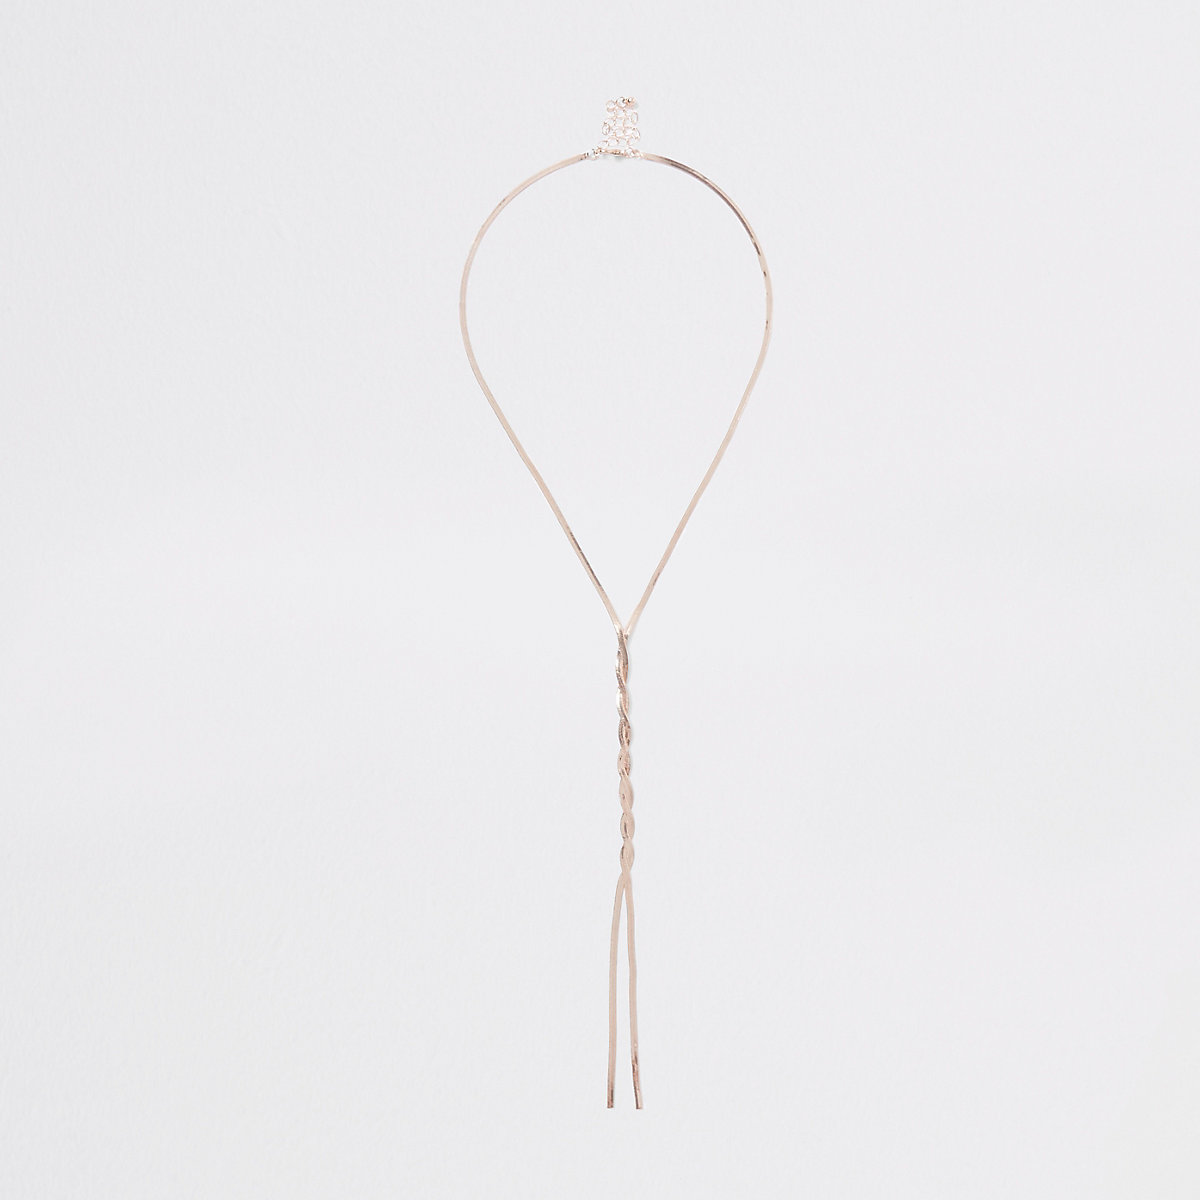 Rose gold twist snake chain necklace